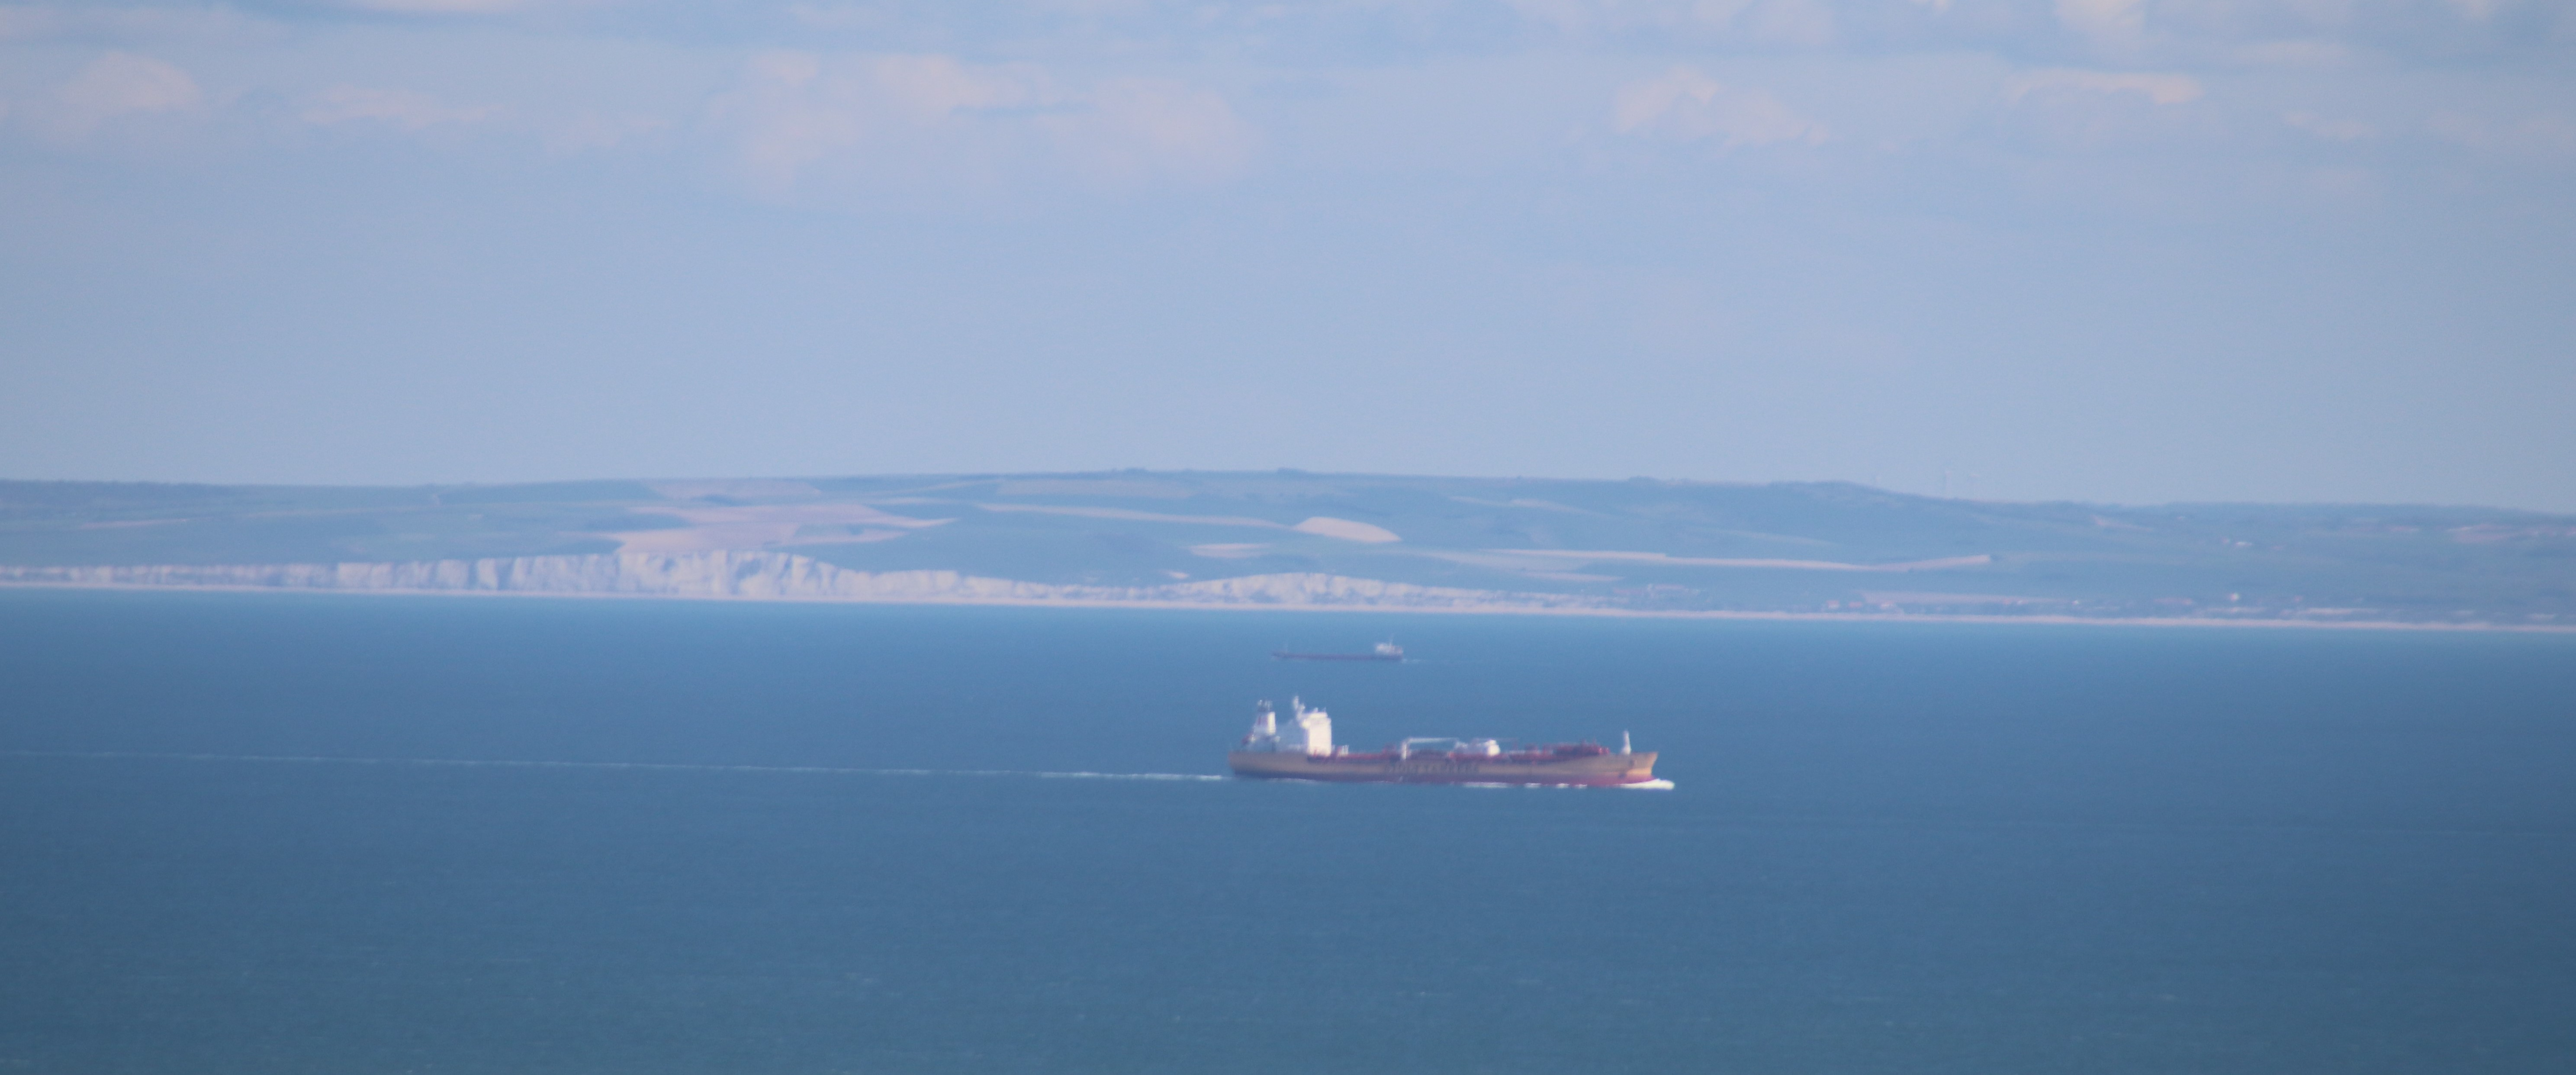 France across one of the worlds busiest shipping lane